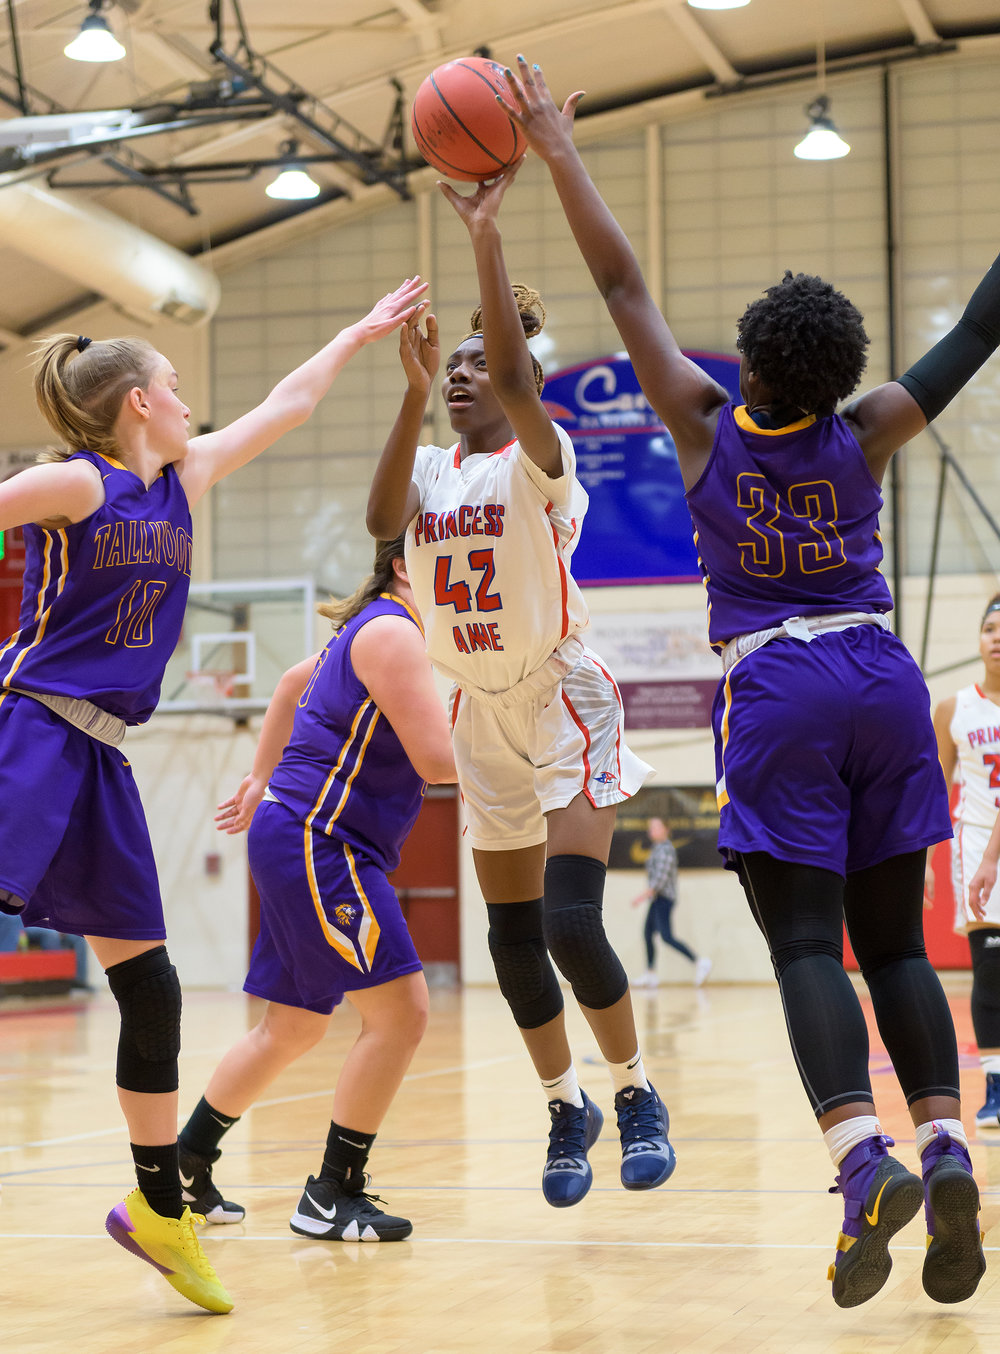 Game action from the Tallwood vs Princess Anne girls basketball game held on Tuesday, December 04, 2018 at Princess Anne High School. Princess Anne defeated Tallwood 69 to 40.